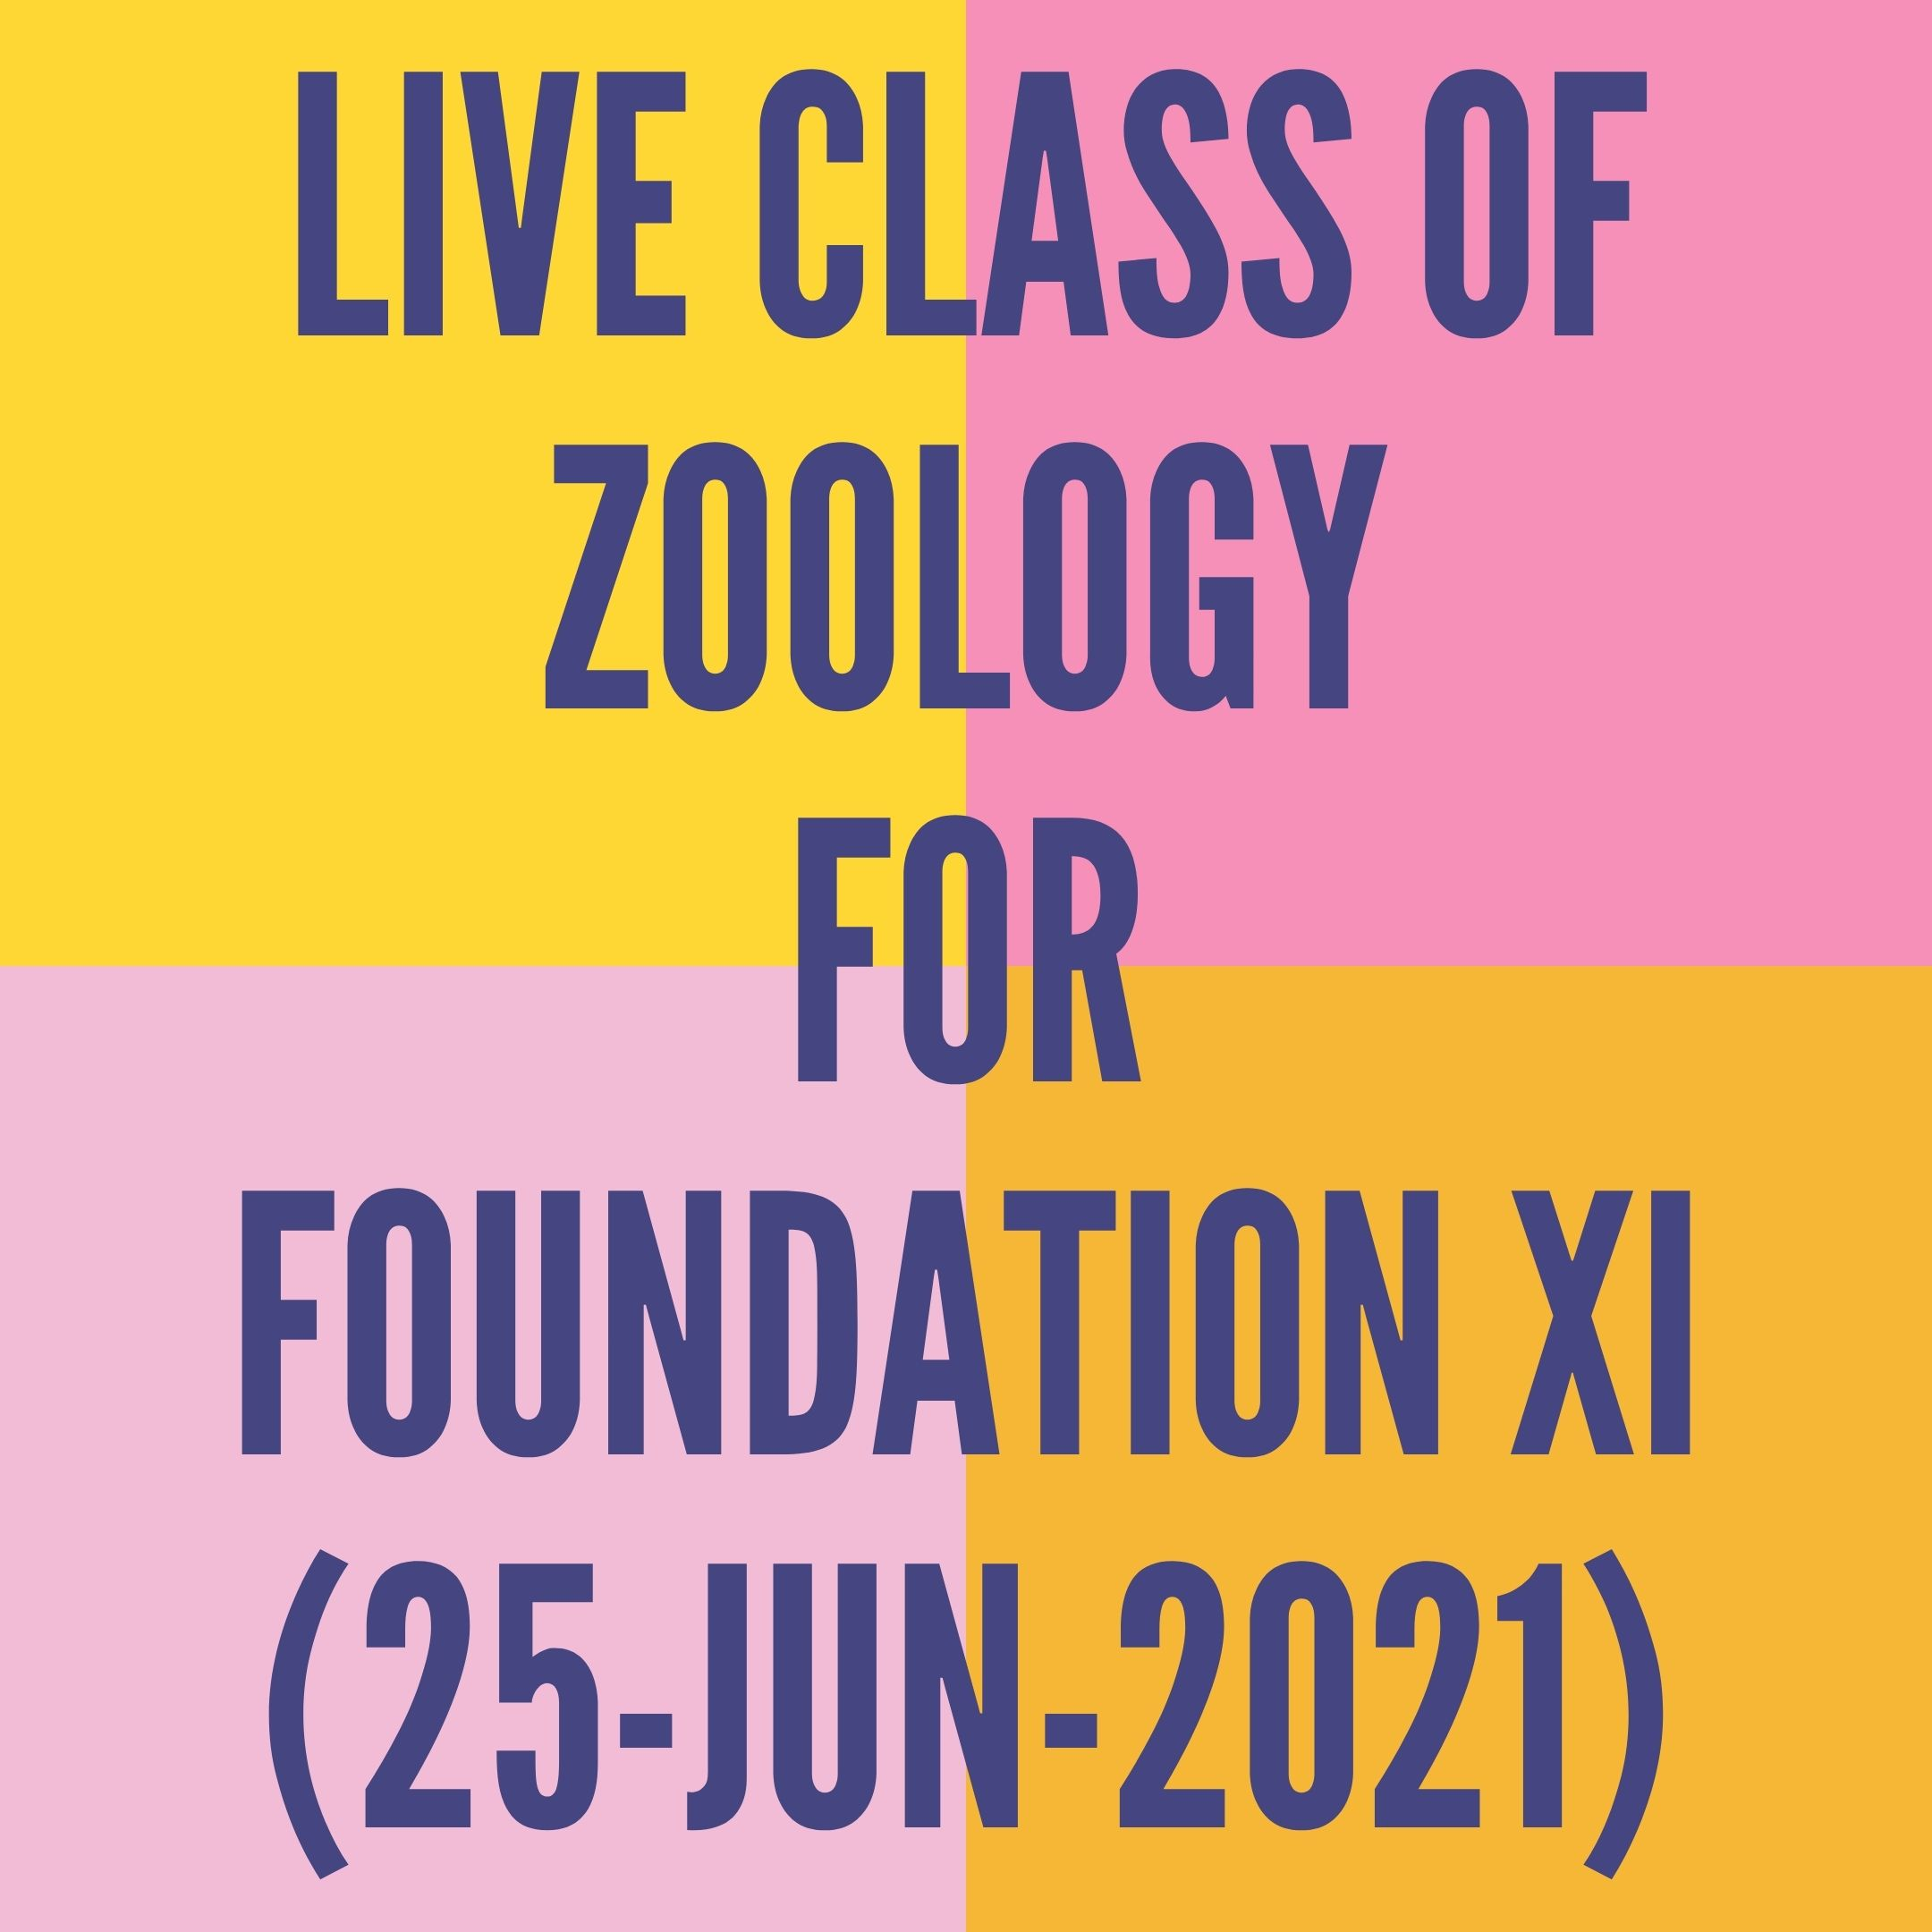 LIVE CLASS OF ZOOLOGY FOR FOUNDATION XI (25-JUN-2021) DIGESTIVE SYSTEM